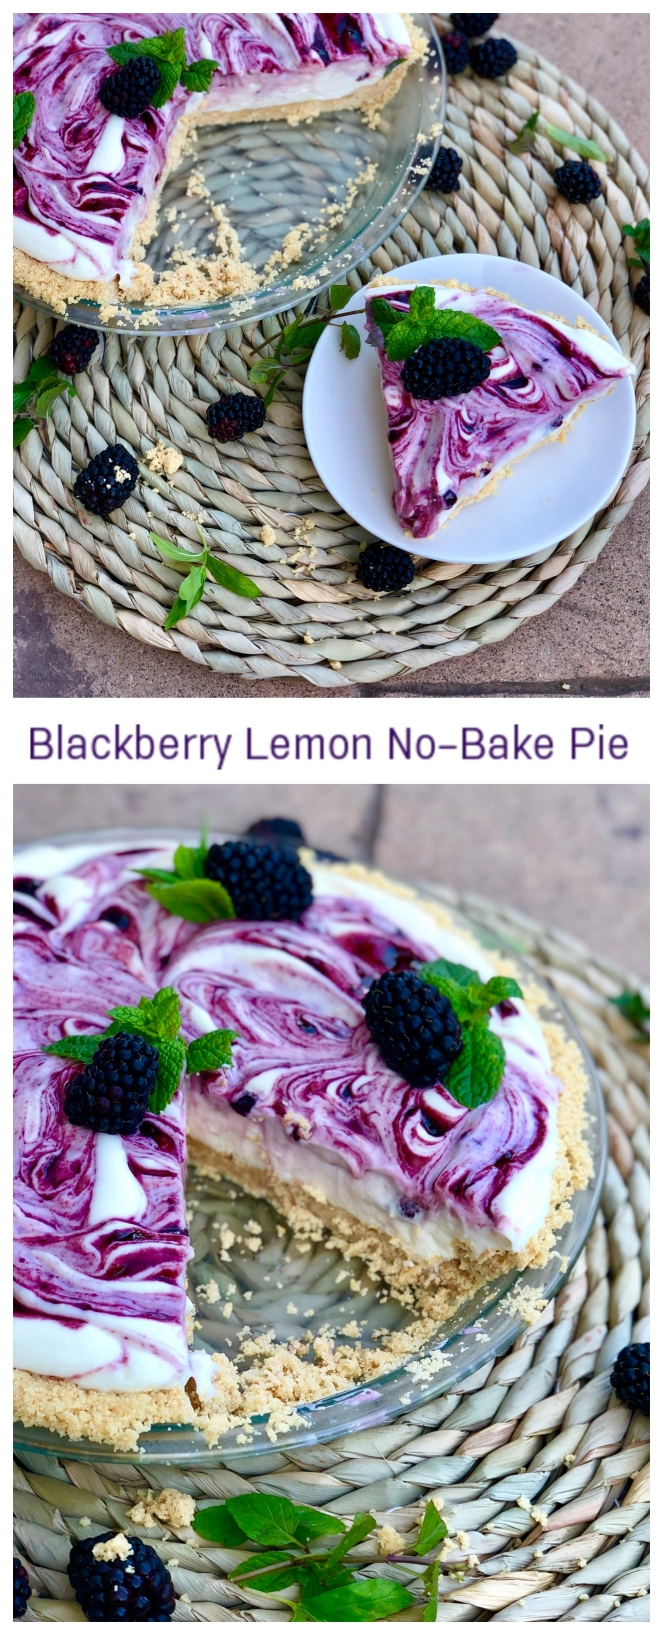 Blackberry Lemon No-Bake Pie